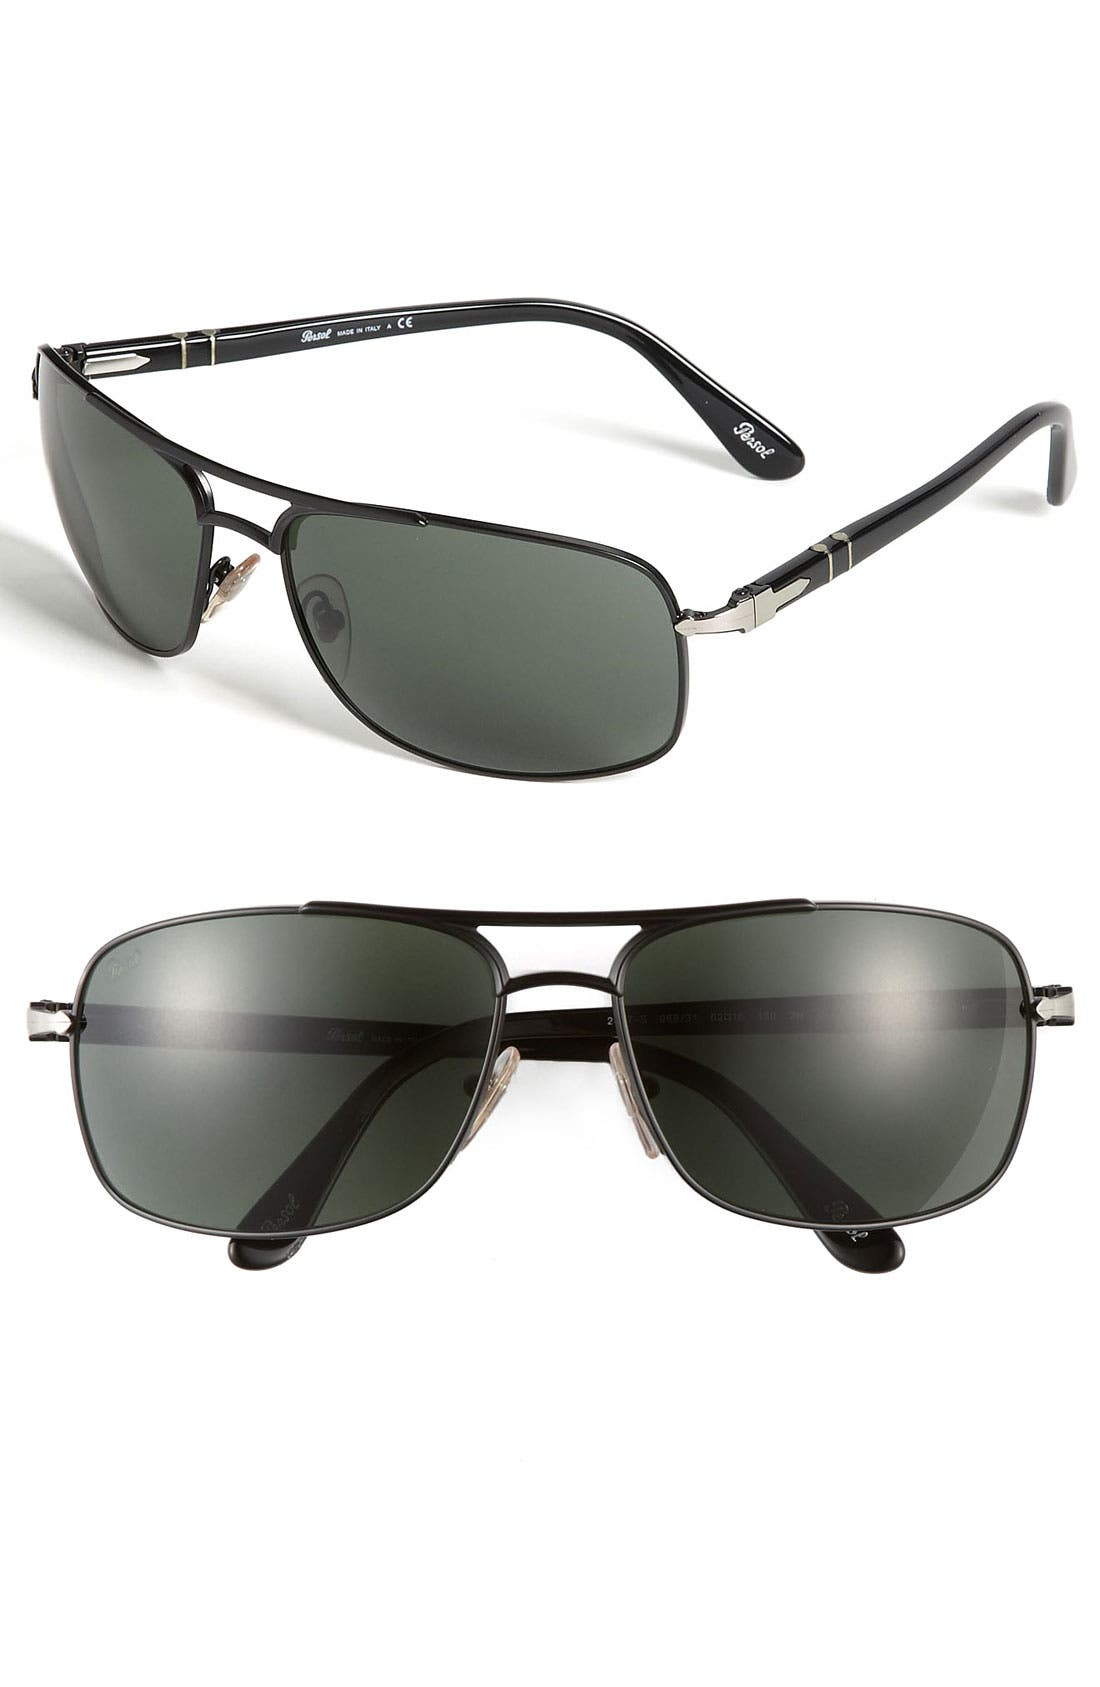 Alternate Image 1 Selected - Persol 62mm Sunglasses